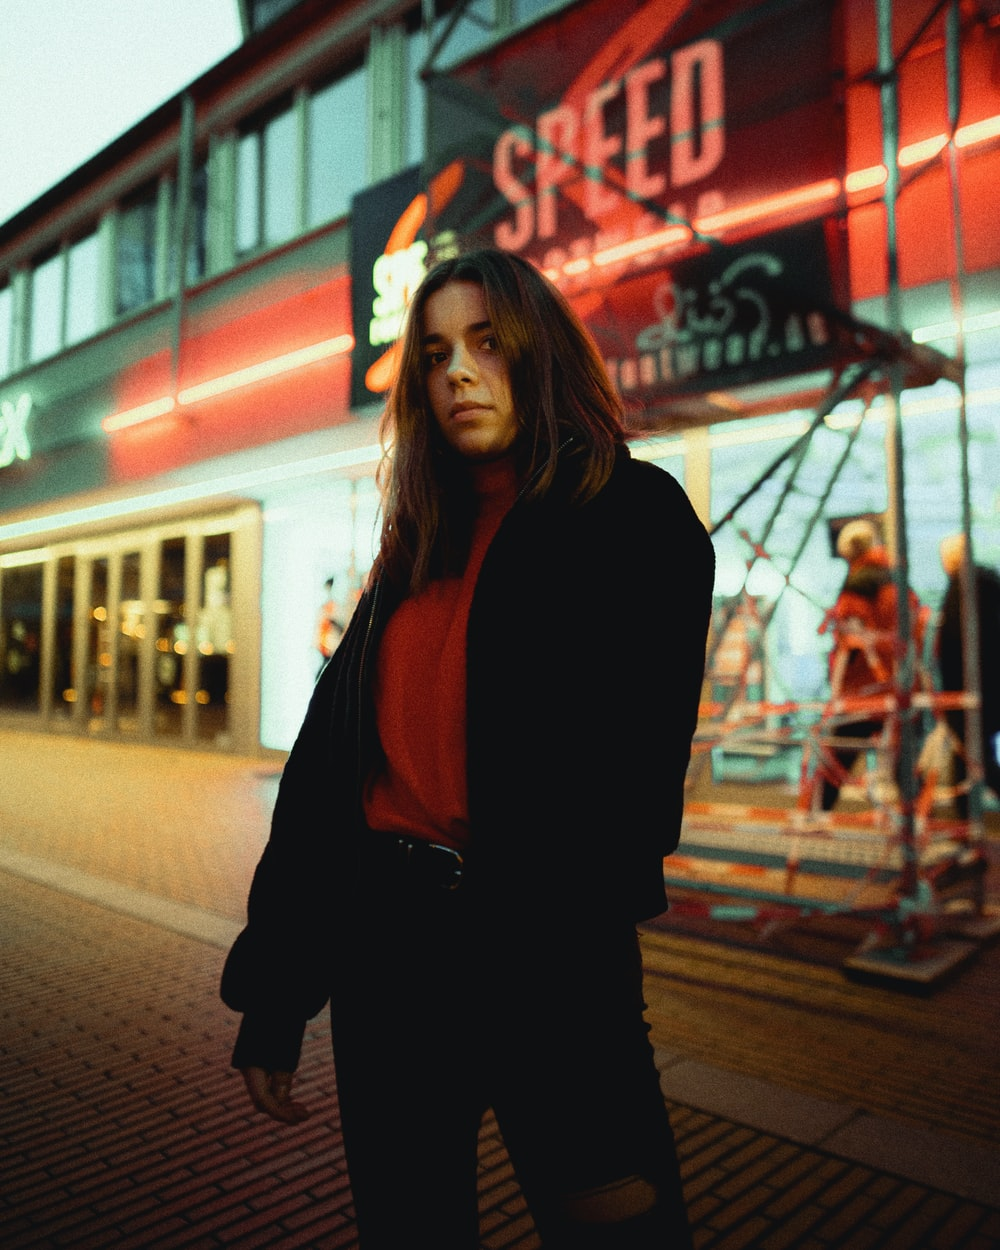 woman in black long sleeve shirt standing near red and white neon signage during night time